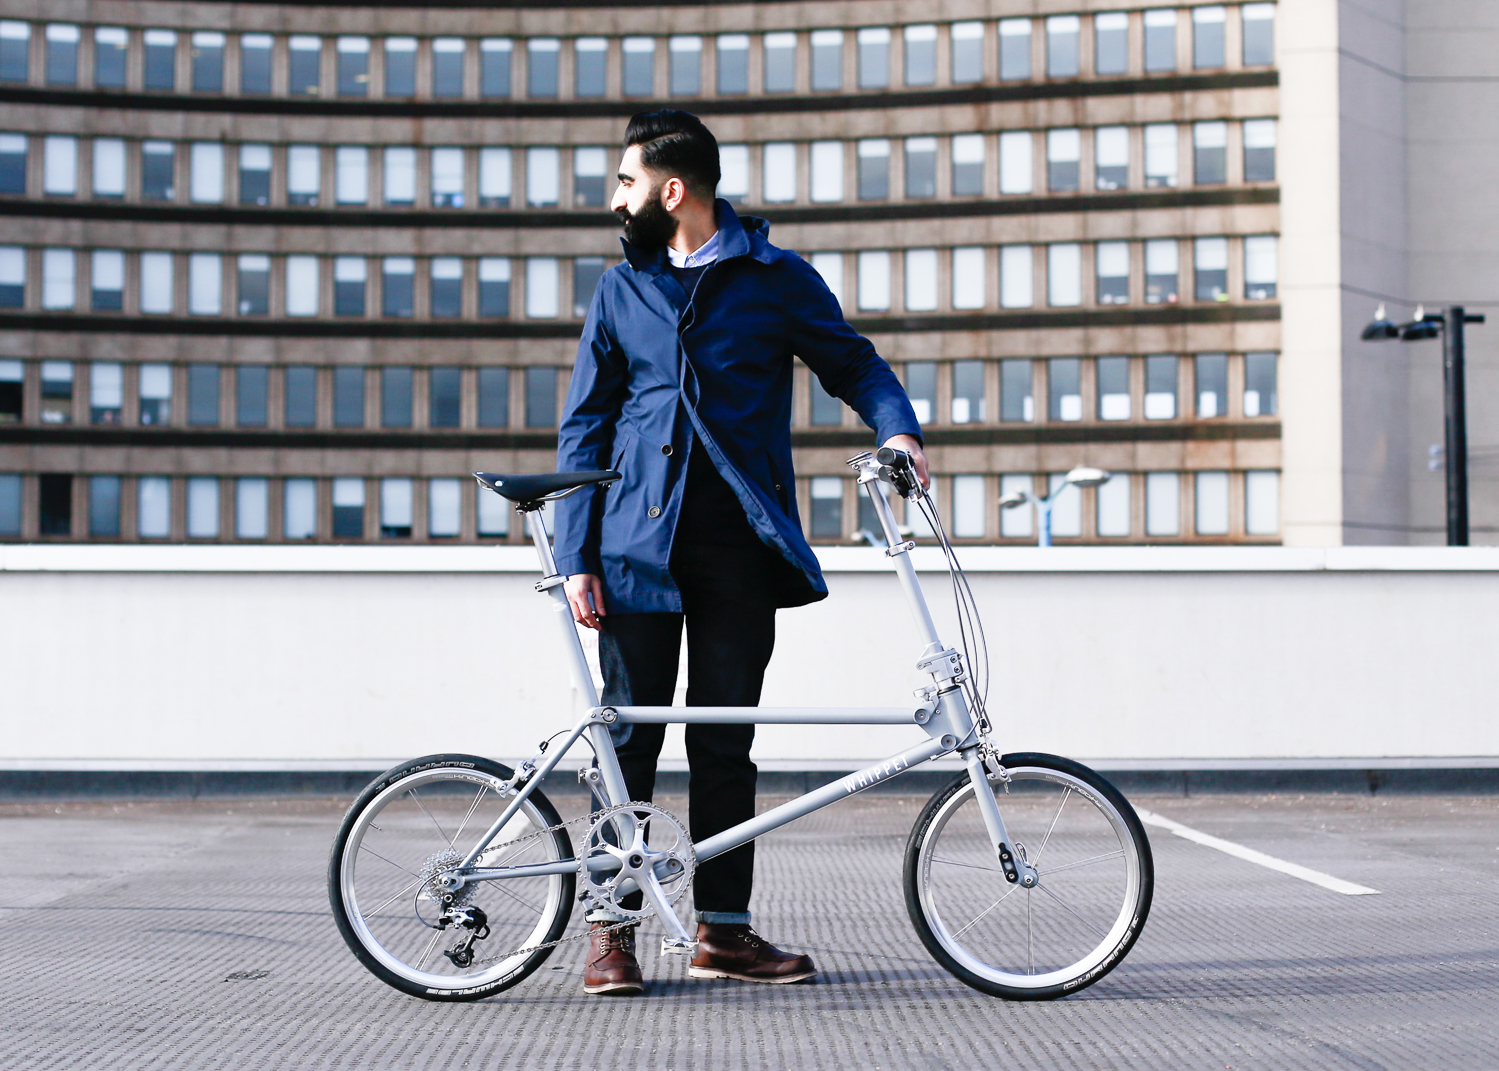 Whippet Bicycle - a new British folding bicycle